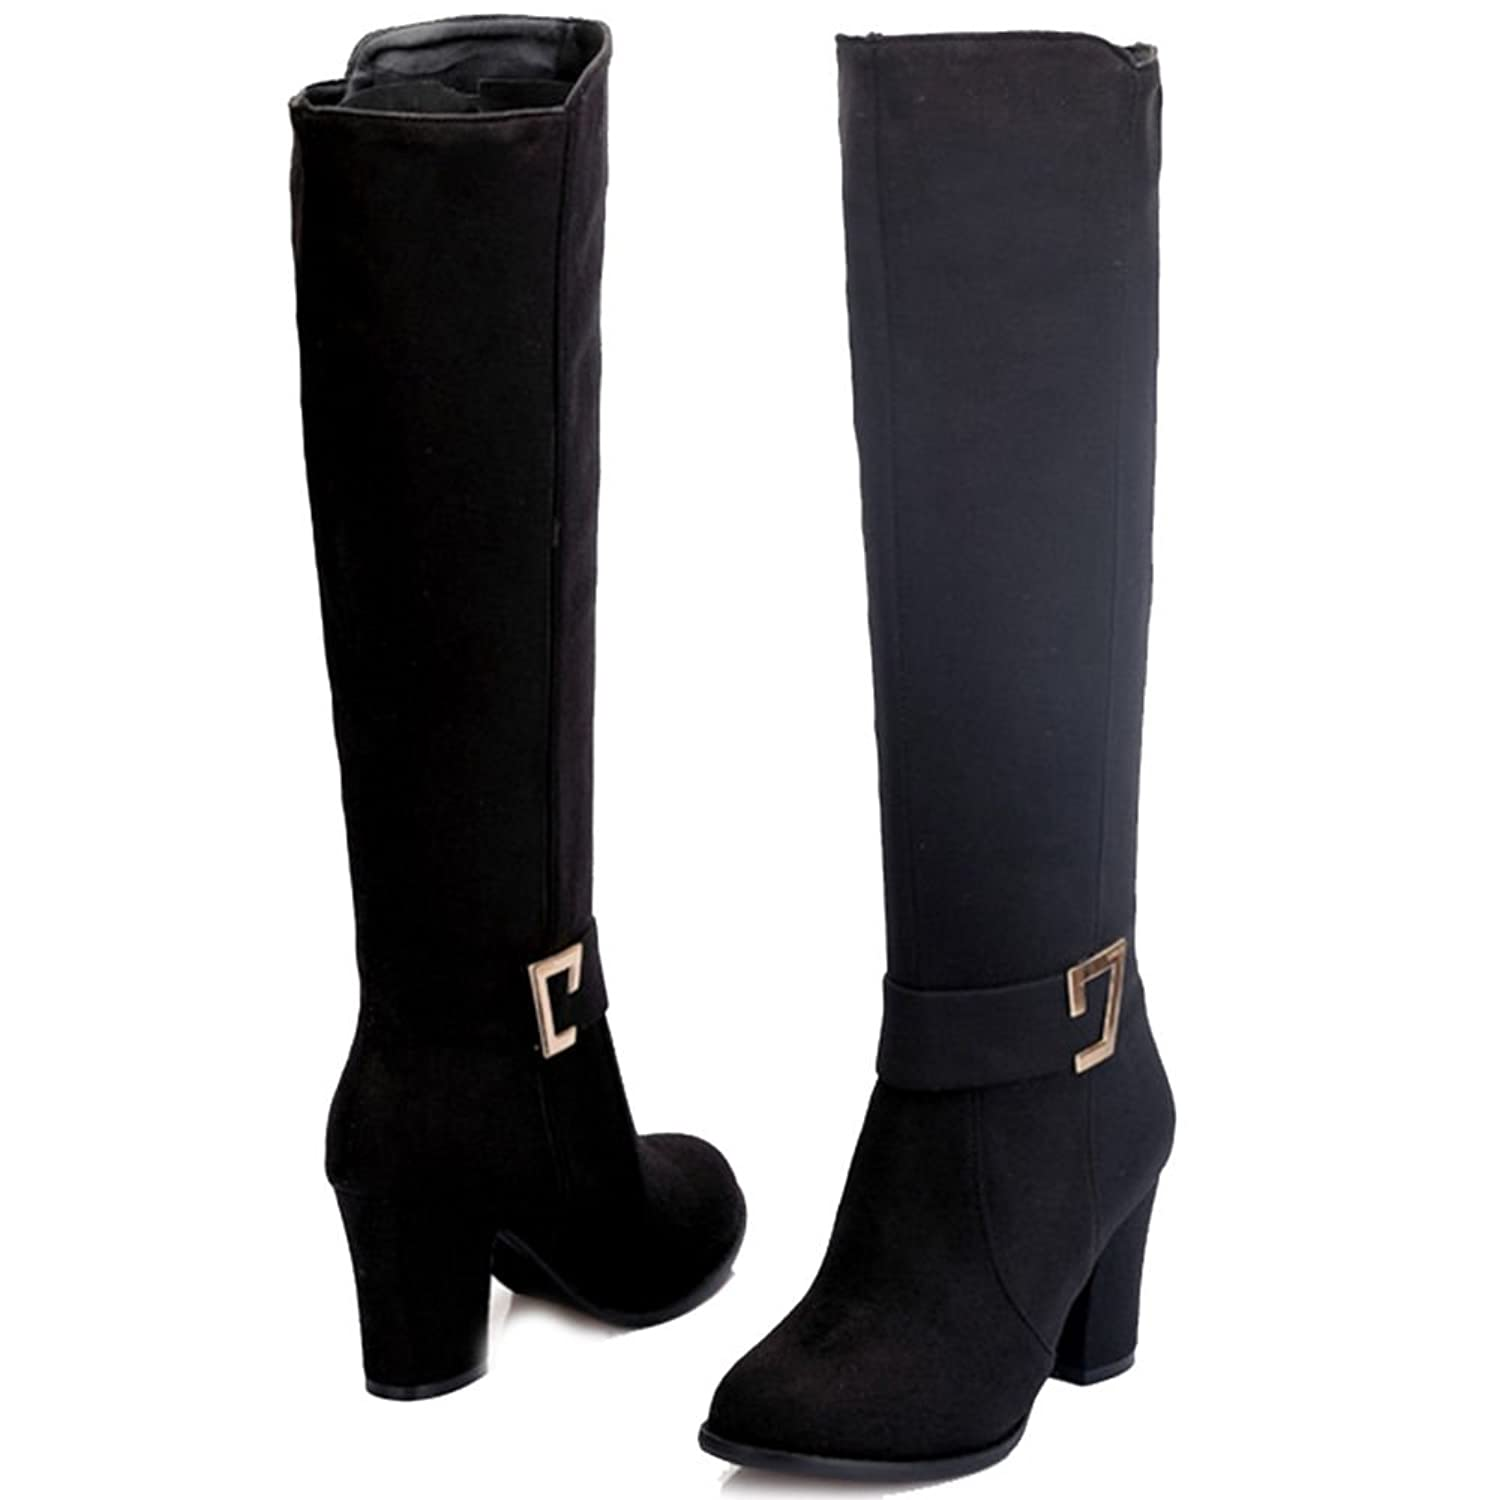 SJJH Women Knee-High Boots with Chunky Heel and Suede Material Women Boots  with Large Size and 3-colors Available: Amazon.co.uk: Shoes & Bags